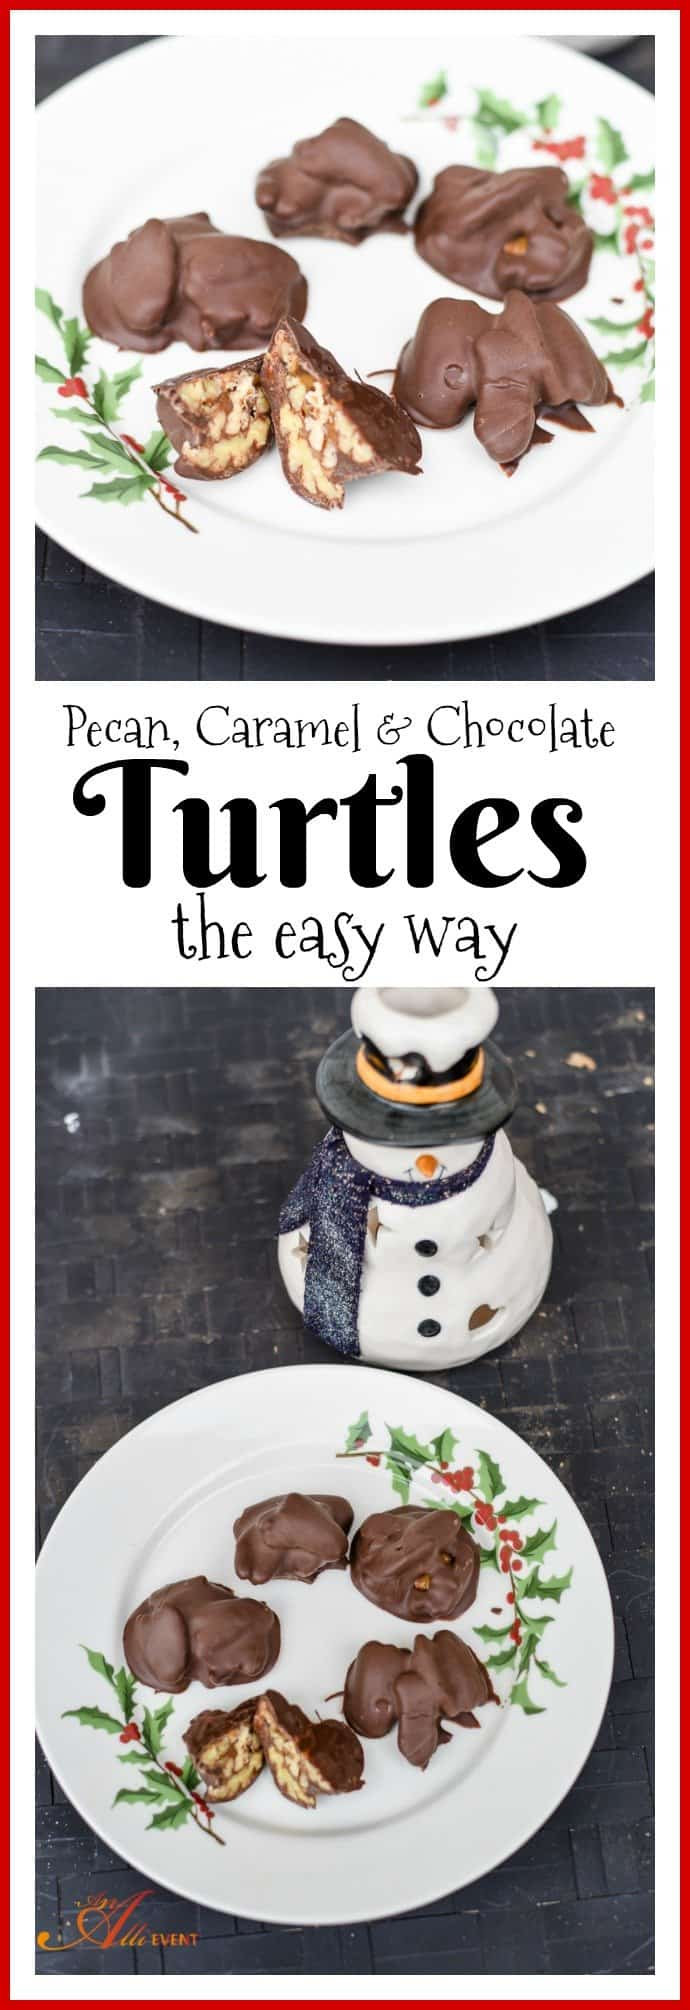 How to Make Turtles